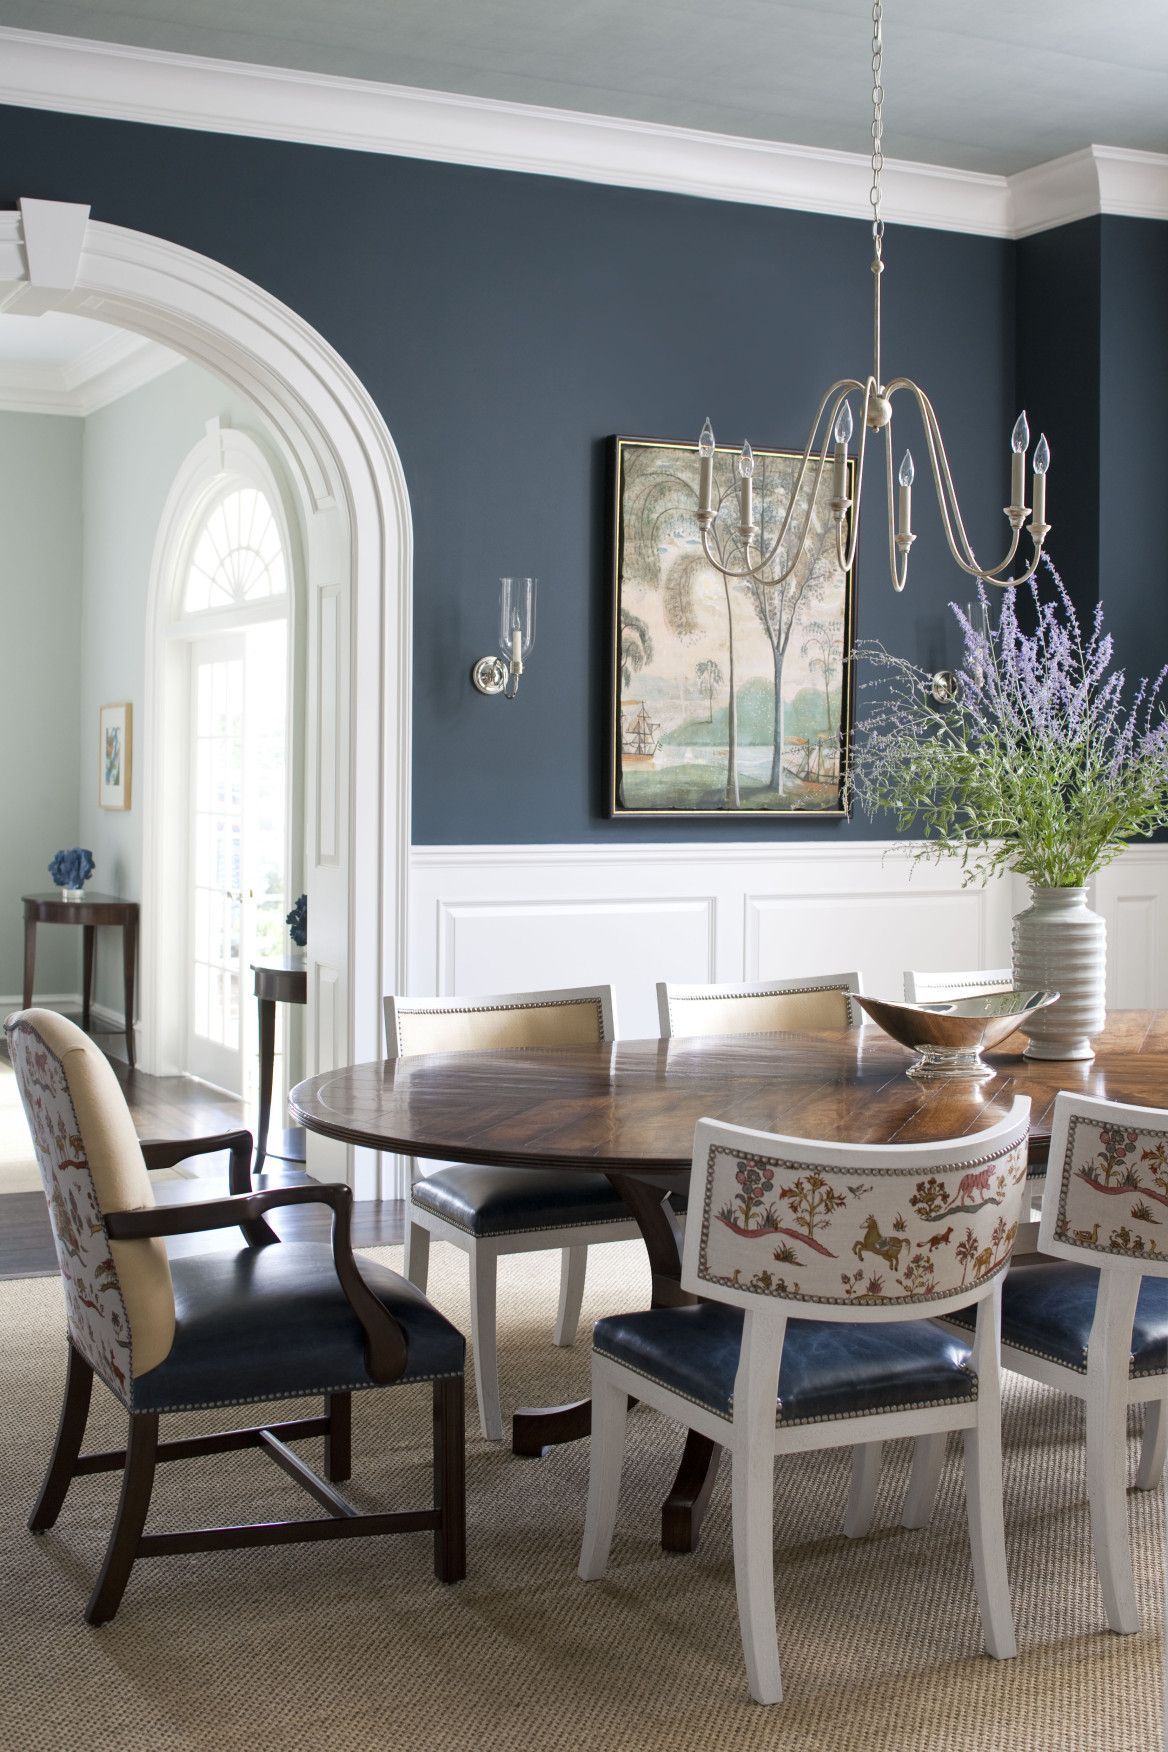 Gray Is The Day Dining Room Colors Formal Dining Room Sets Dining Room Blue Dining room design gray